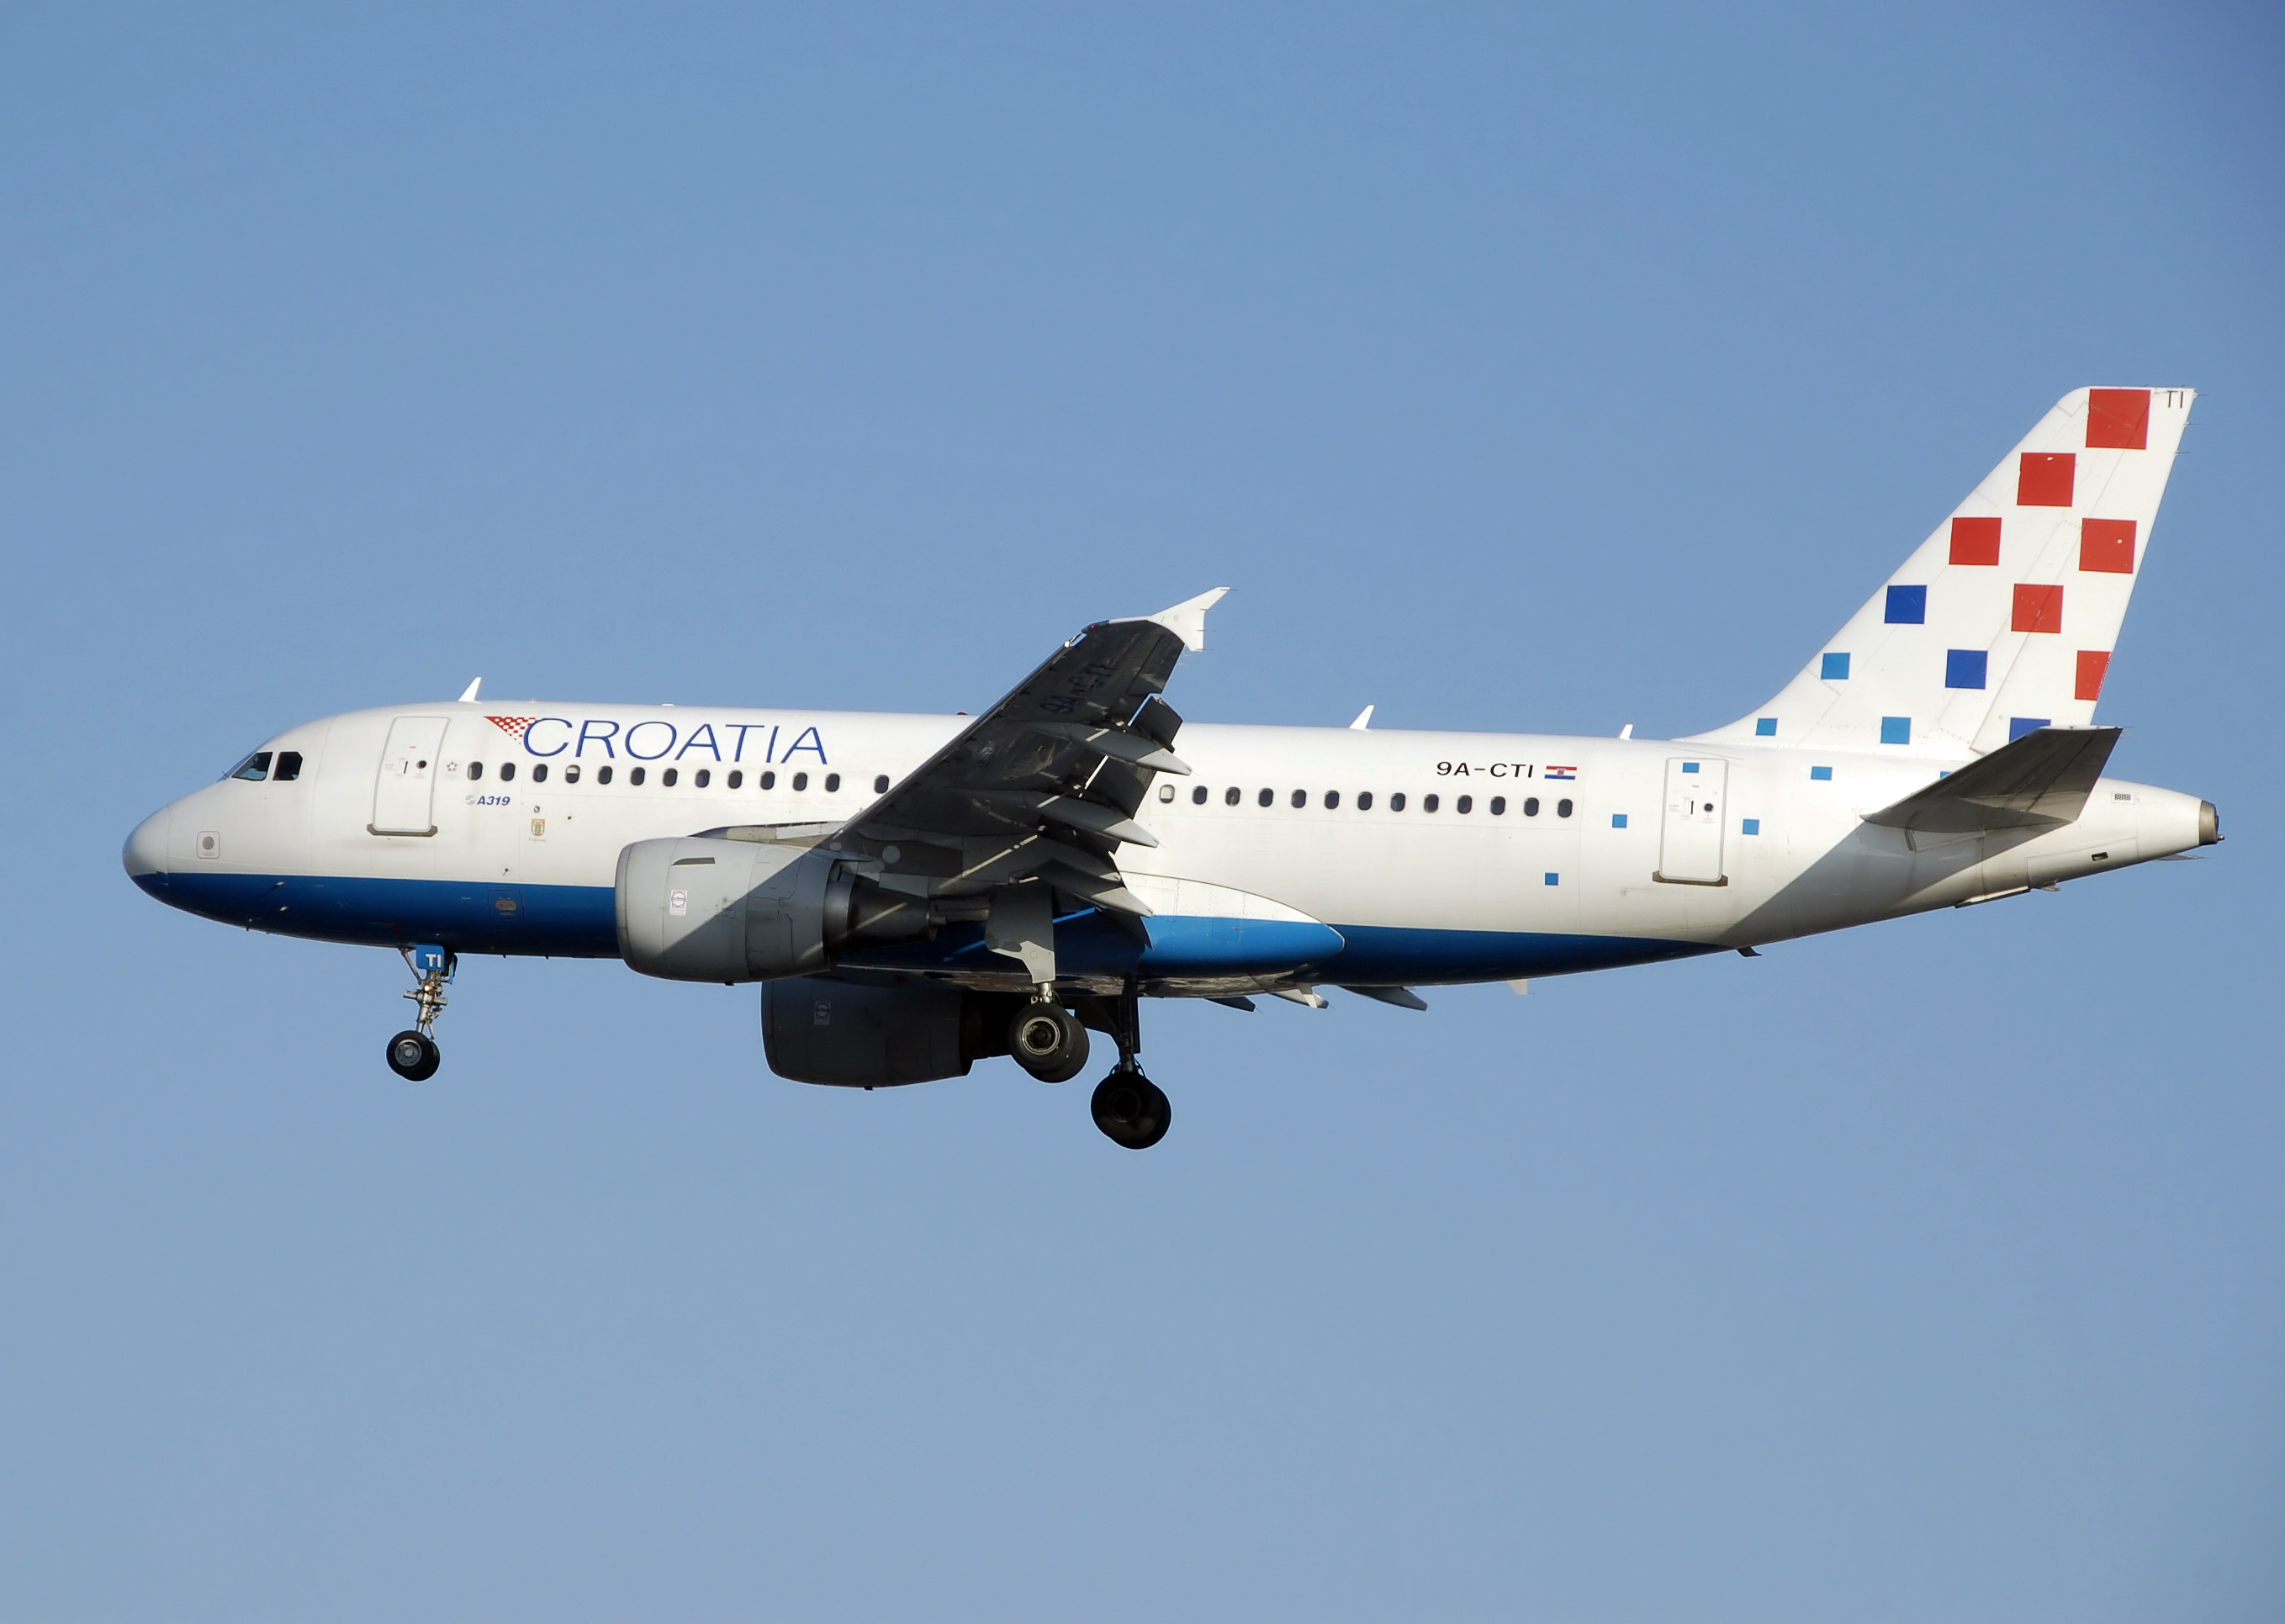 Avion Kroatia Airlines (Croatia Airlines). Sayt.2 officiel